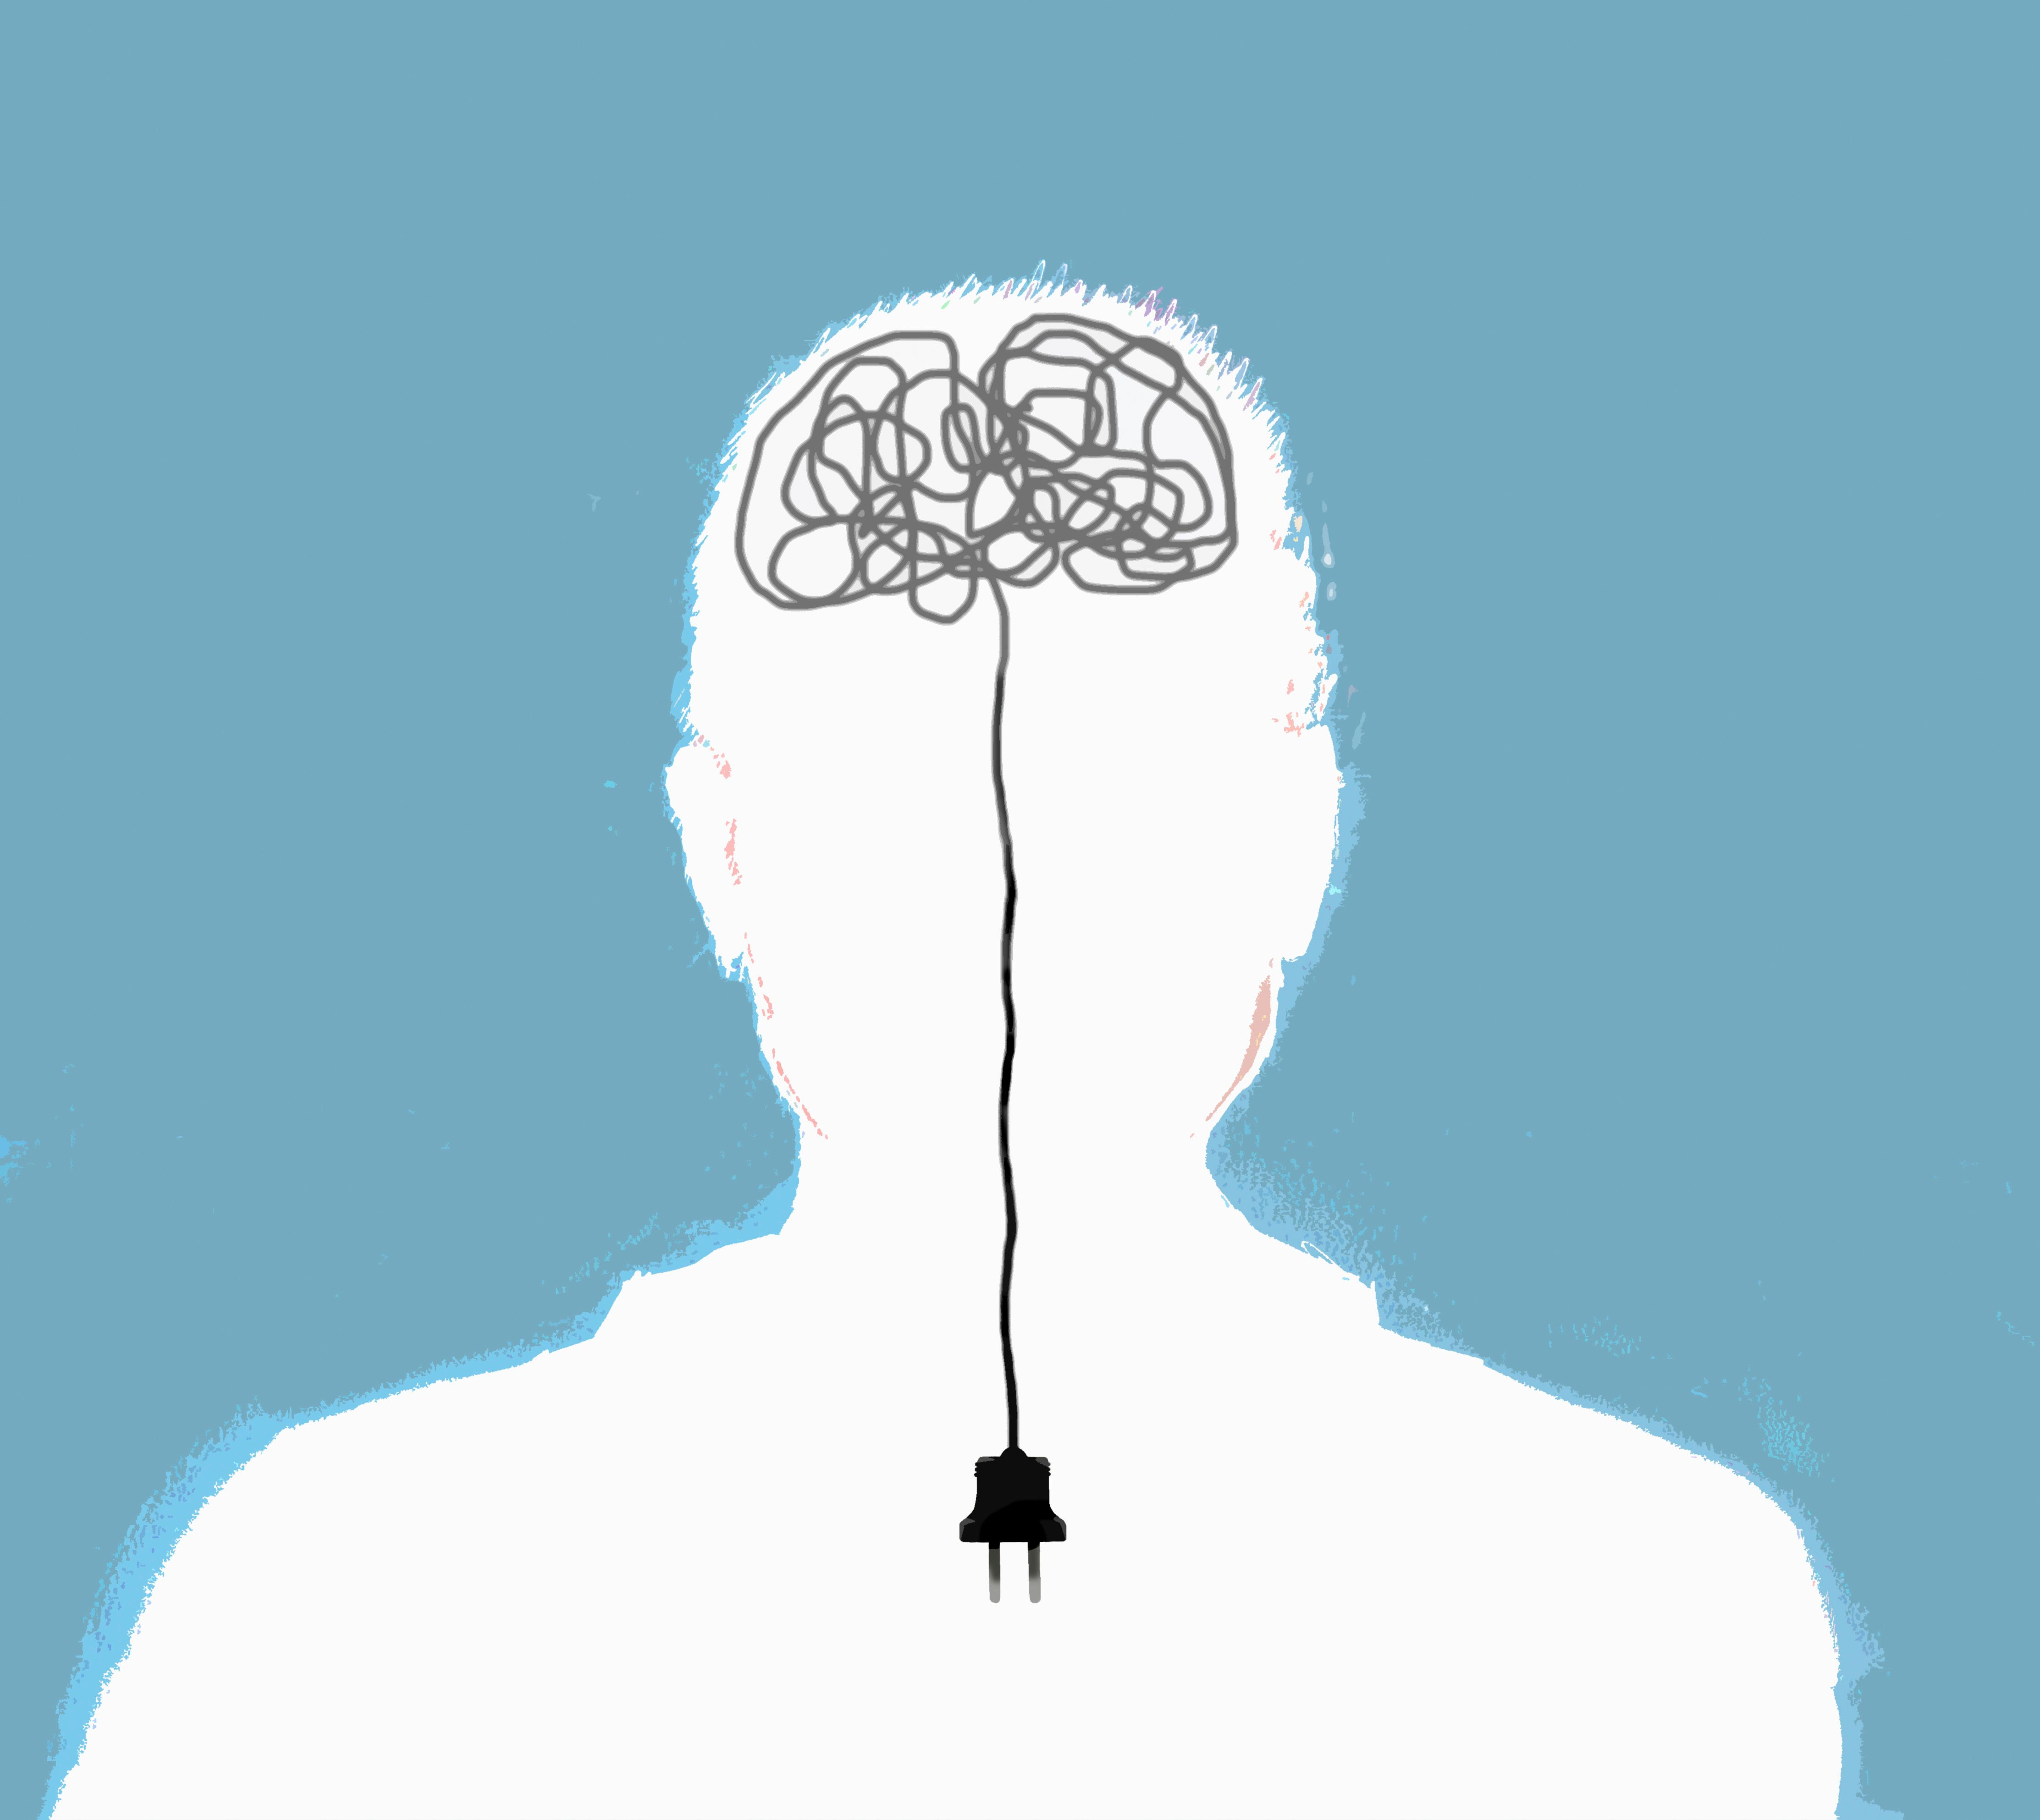 Man with unplugged tangled electric wires in brain